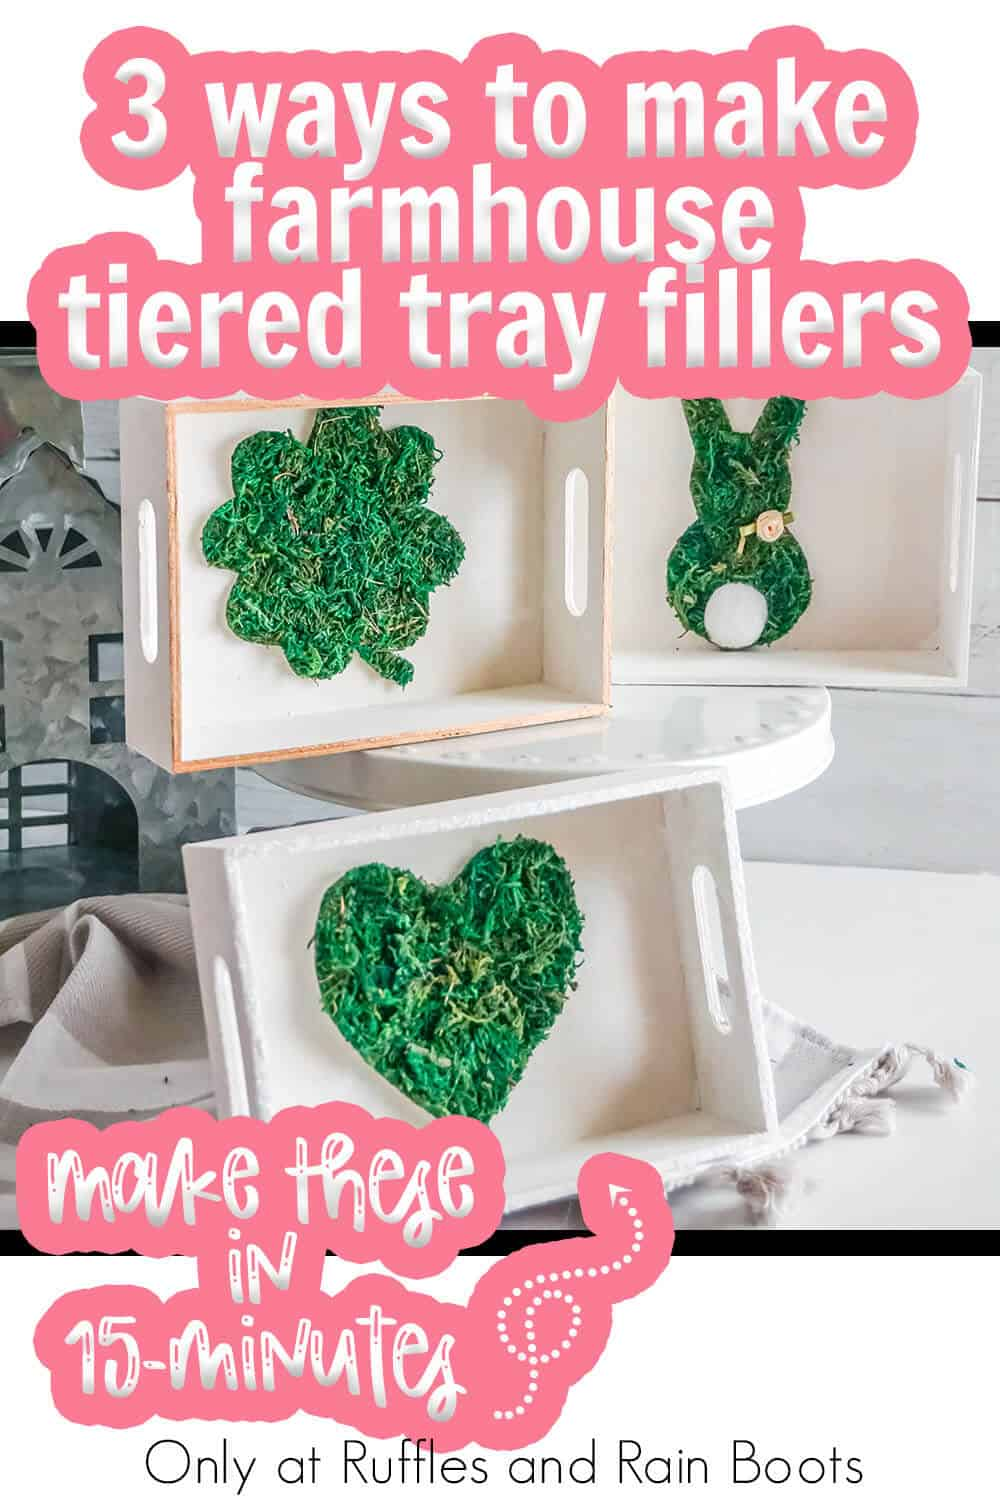 easter moss tiered tray filler with text which reads 3 ways to make farmhouse tiered tray fillers make these in 15 mintues!